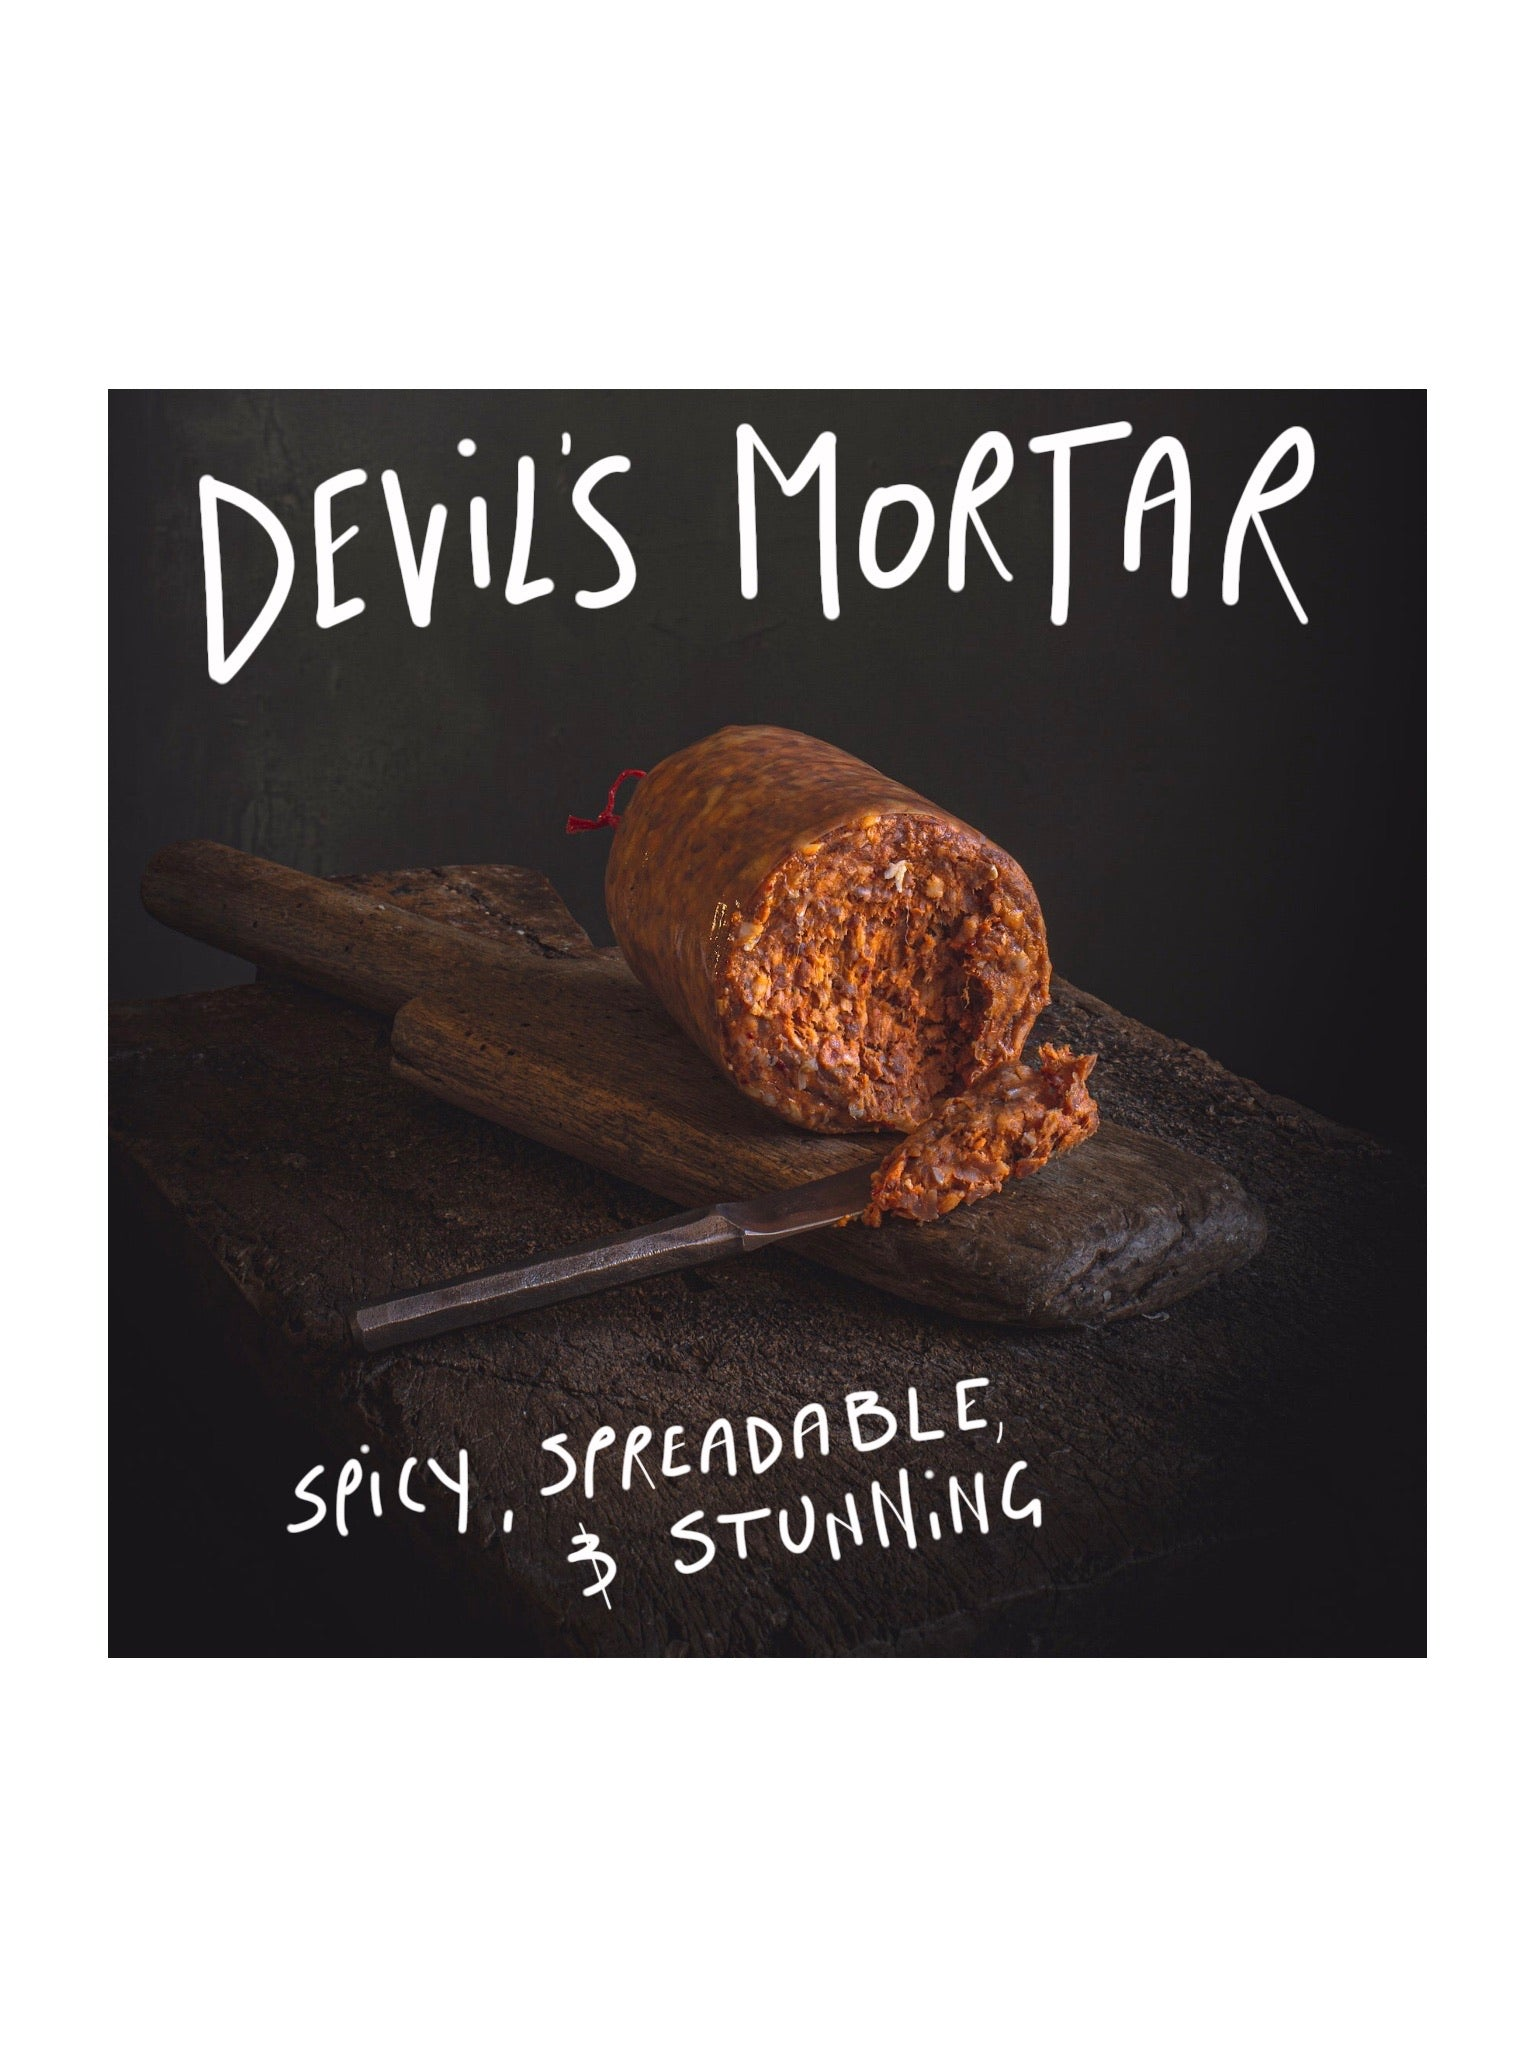 DEVIL'S MORTAR